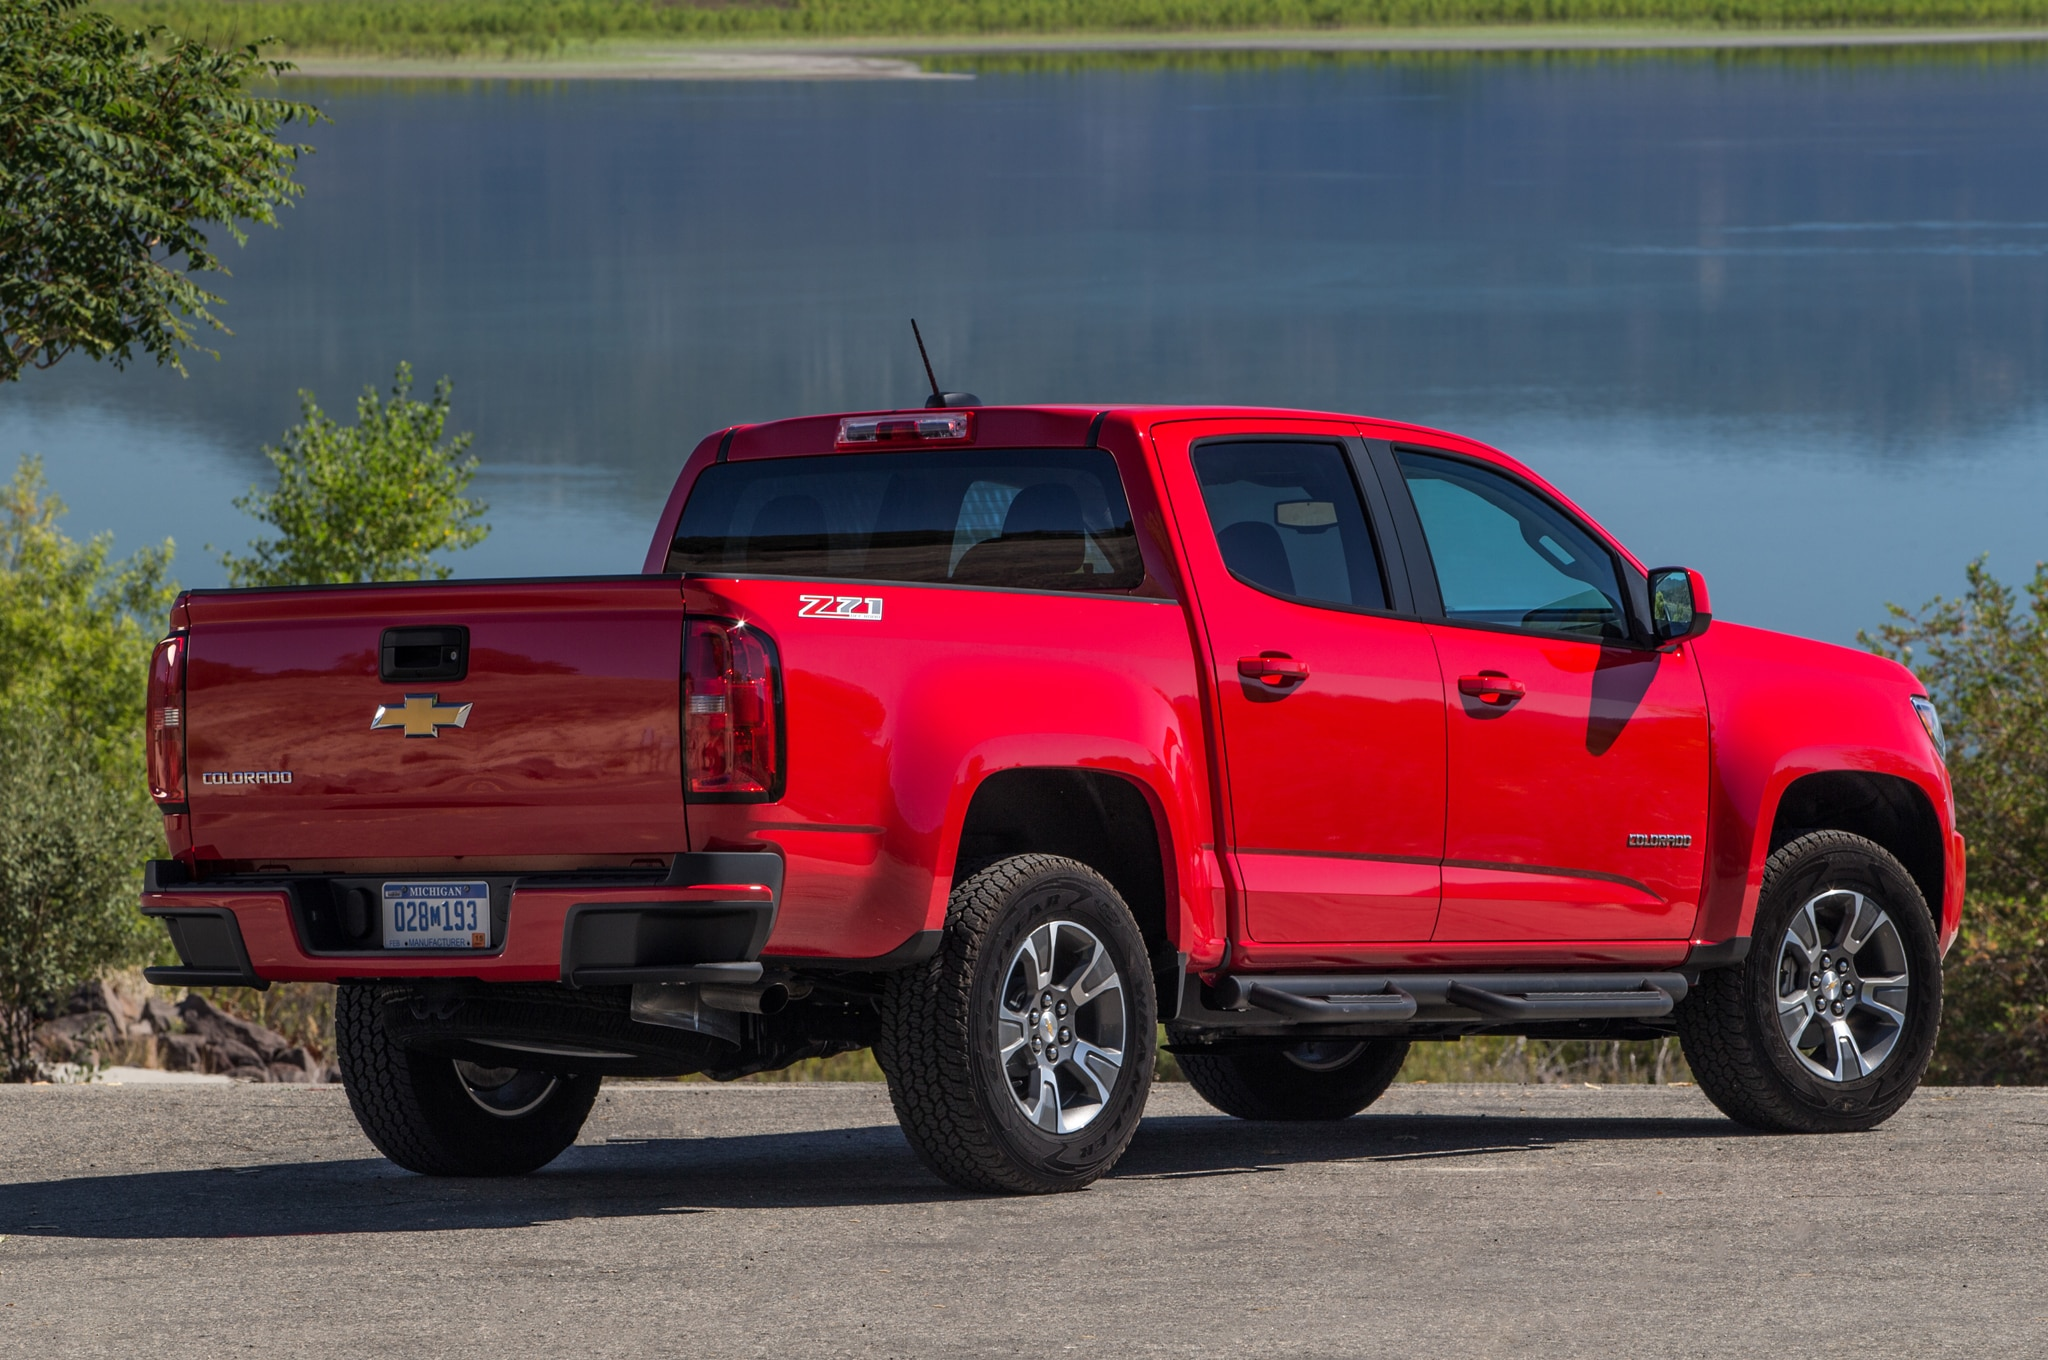 2015 chevrolet colorado wins motor trend truck of the year honors